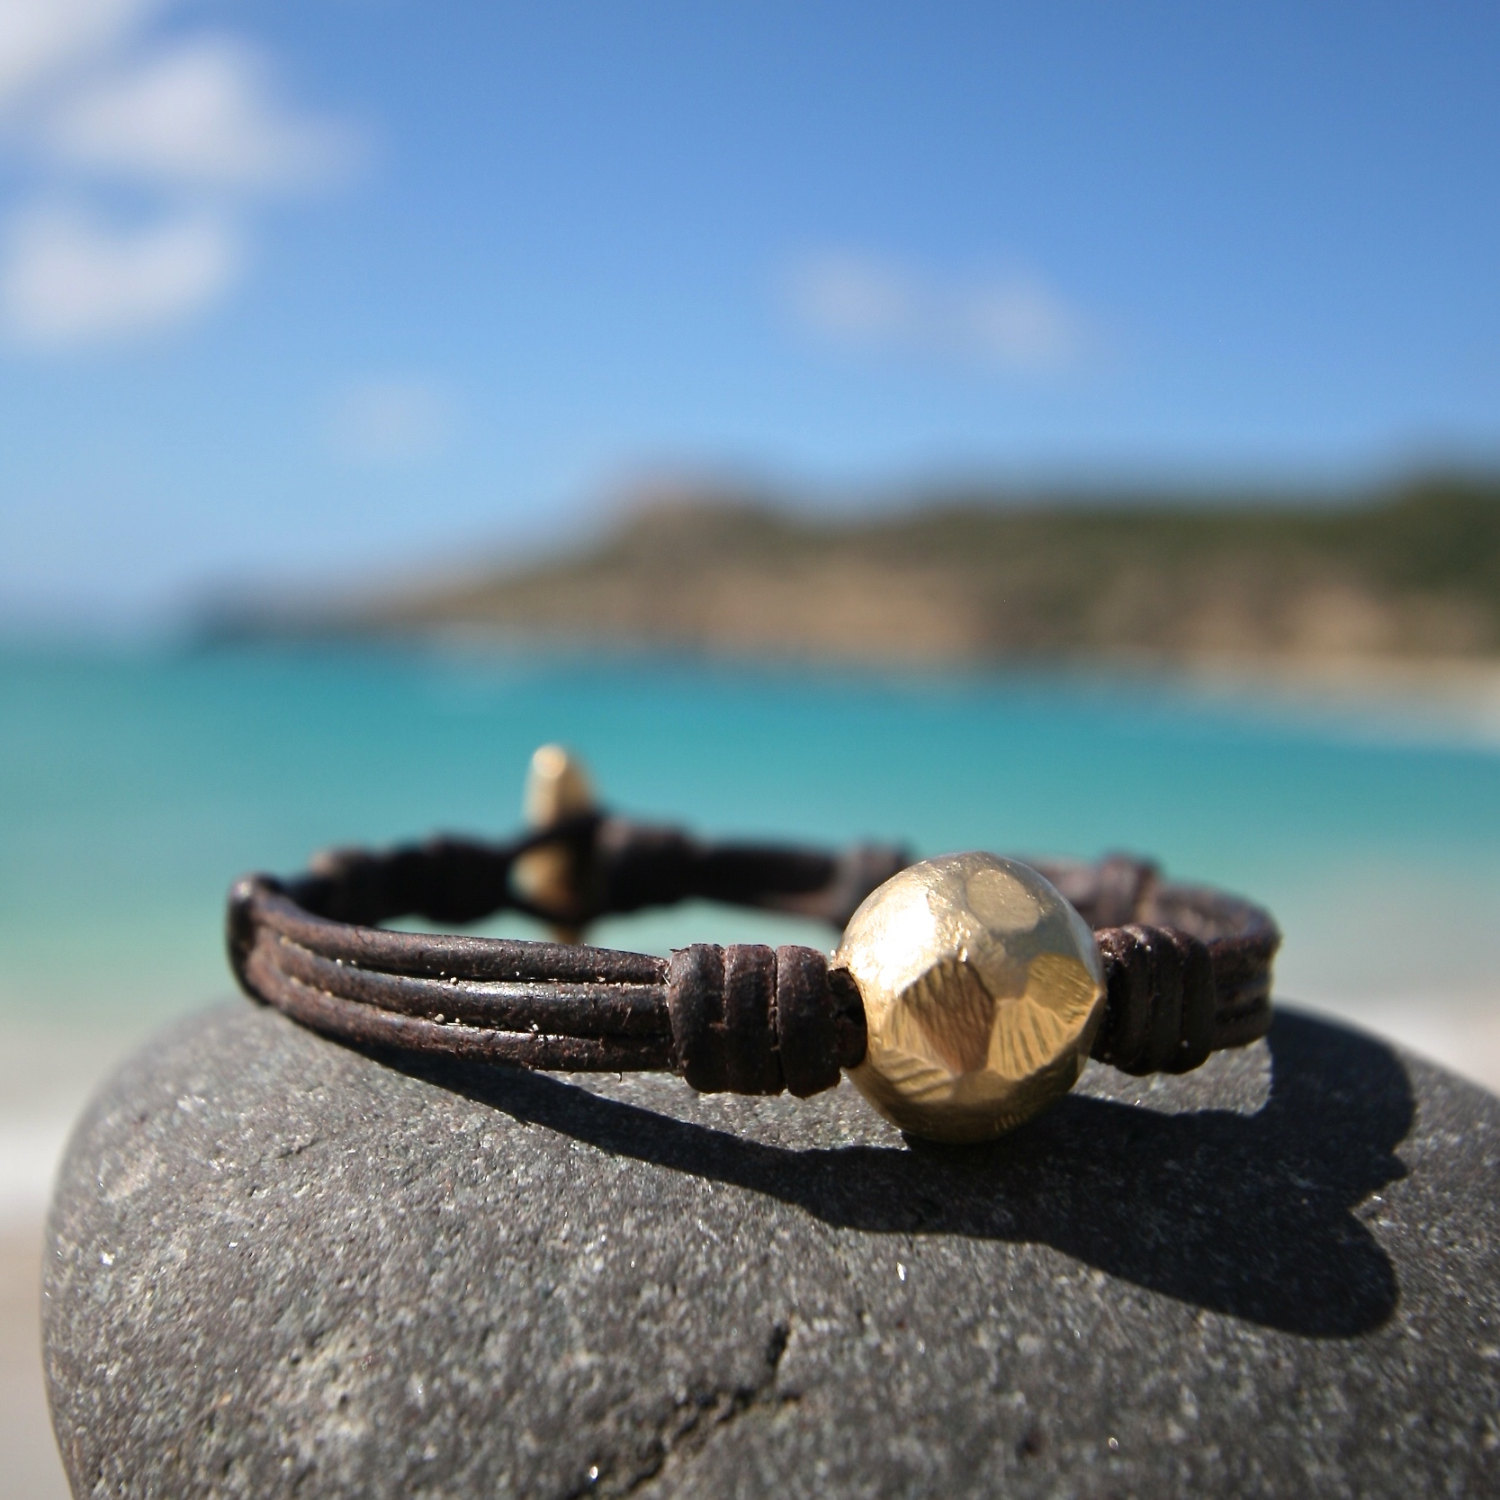 Gold 18k and leather bracelet, super chic luxury jewelry, bohemian chic inspiration, one of a kind solid gold design, St Barths signature.